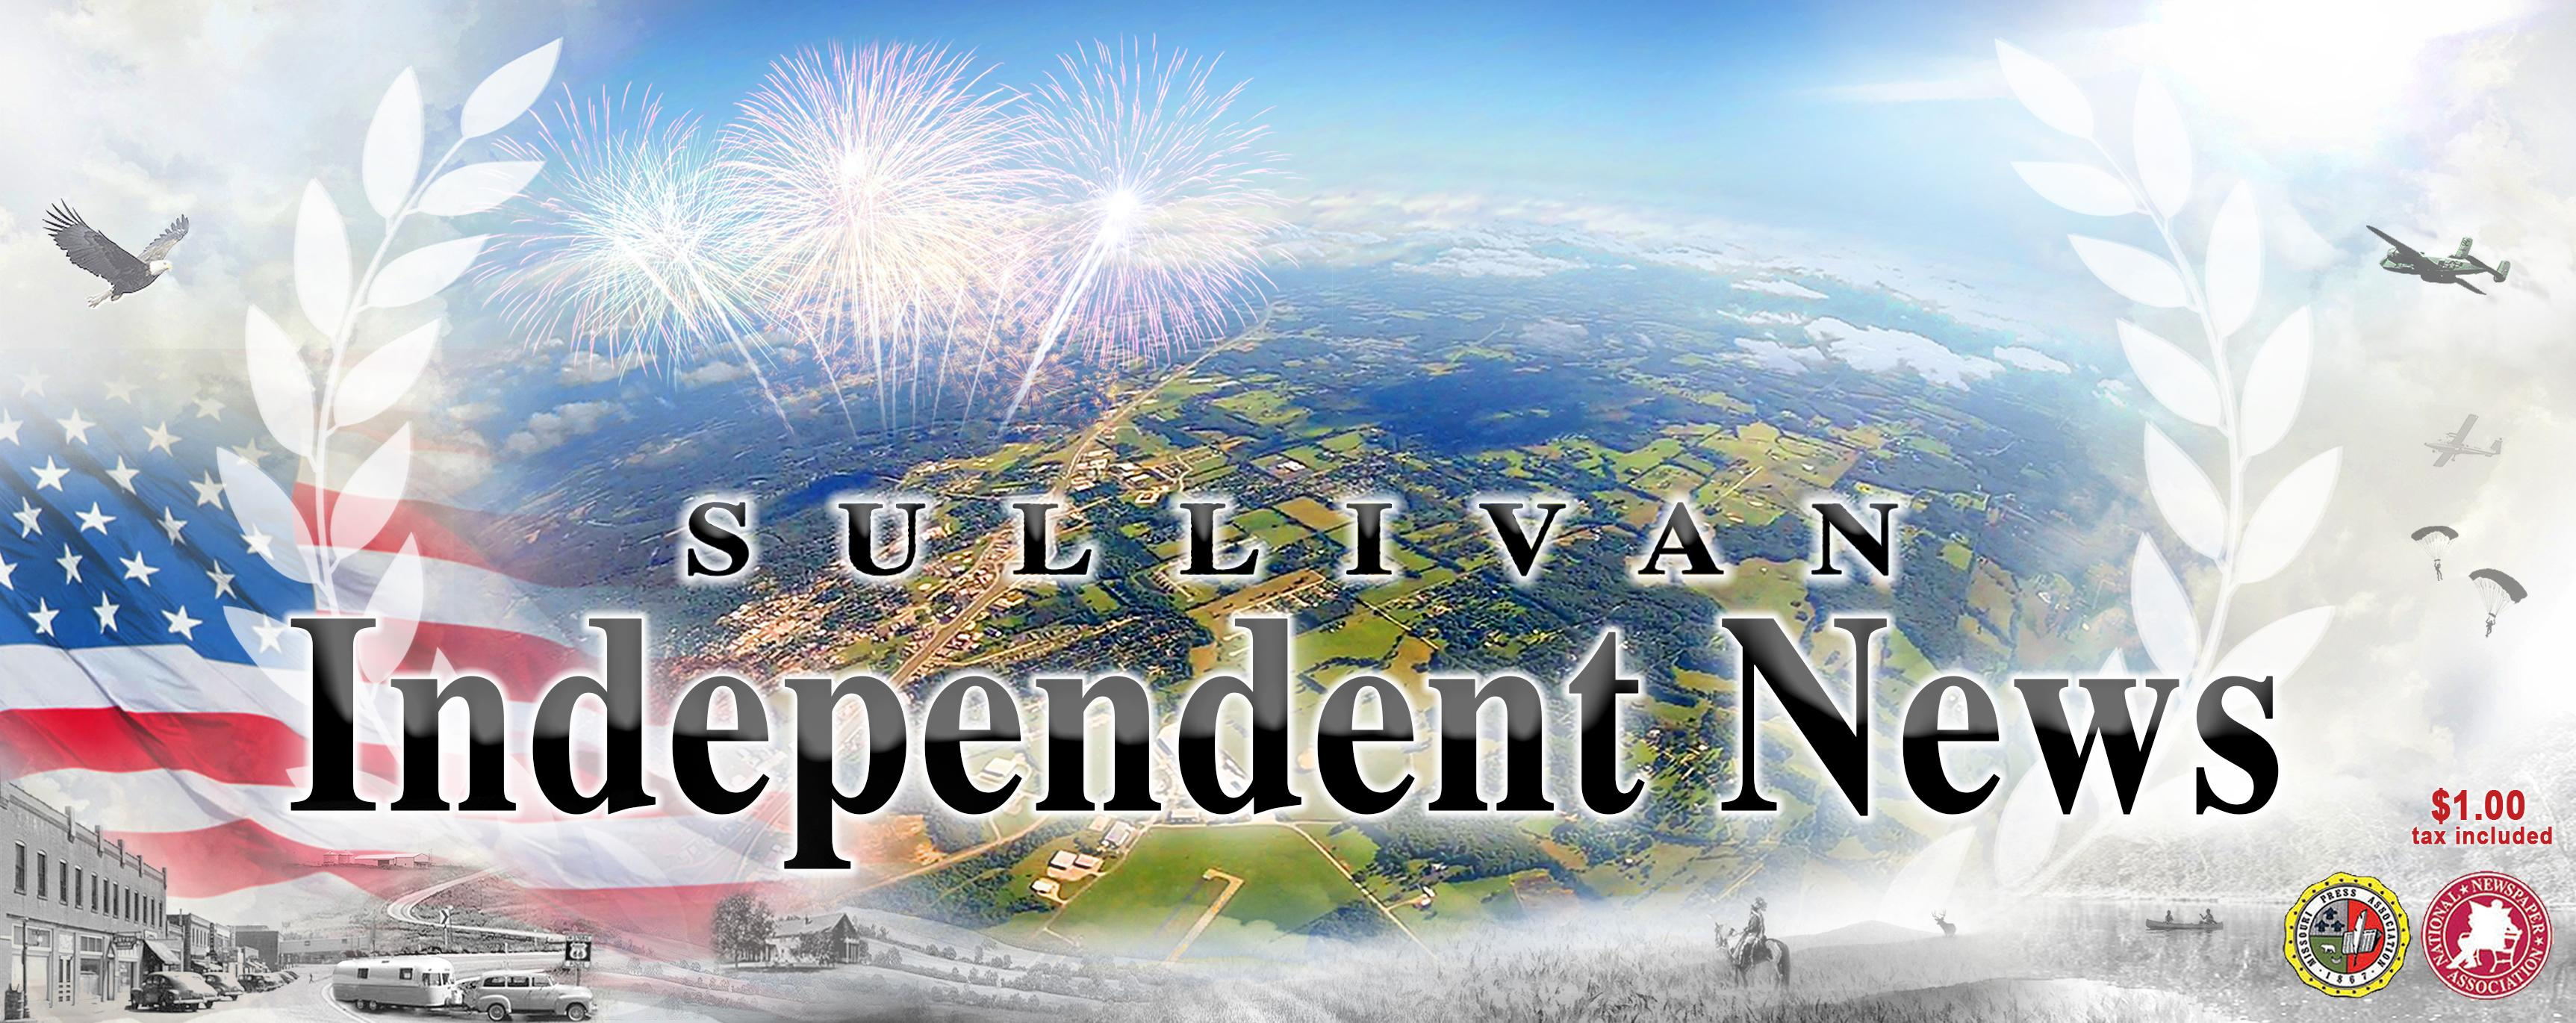 Sullivan Independent News